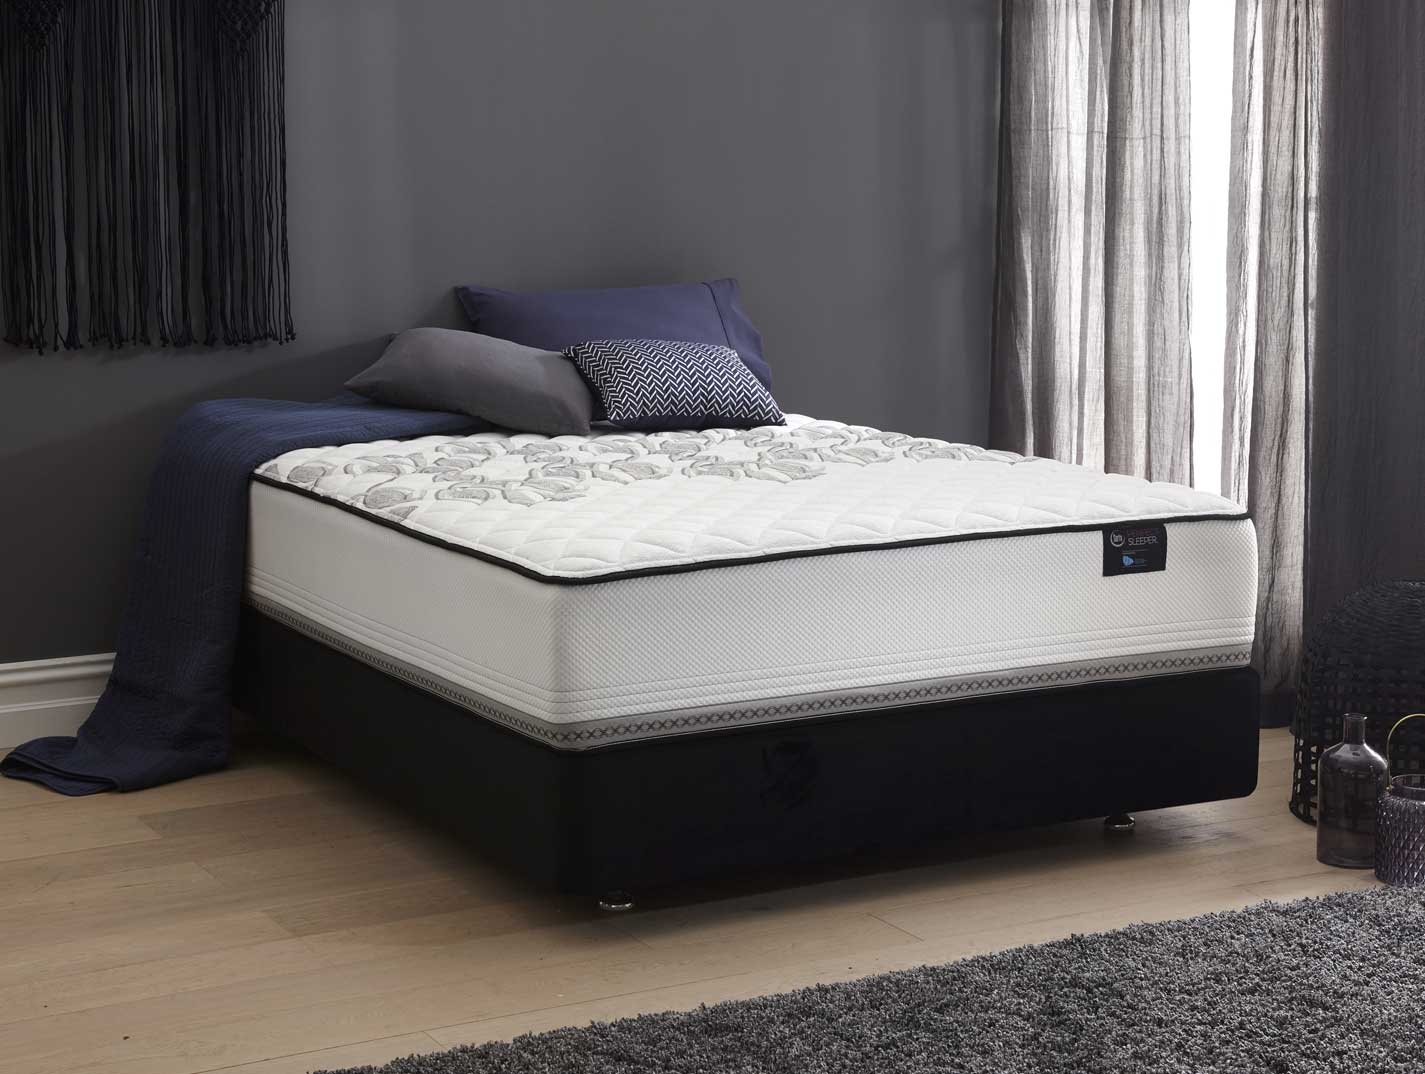 beds collections sale serta acumen firm and mattress linens gel directions icomfort memory mattresses foam luxurious